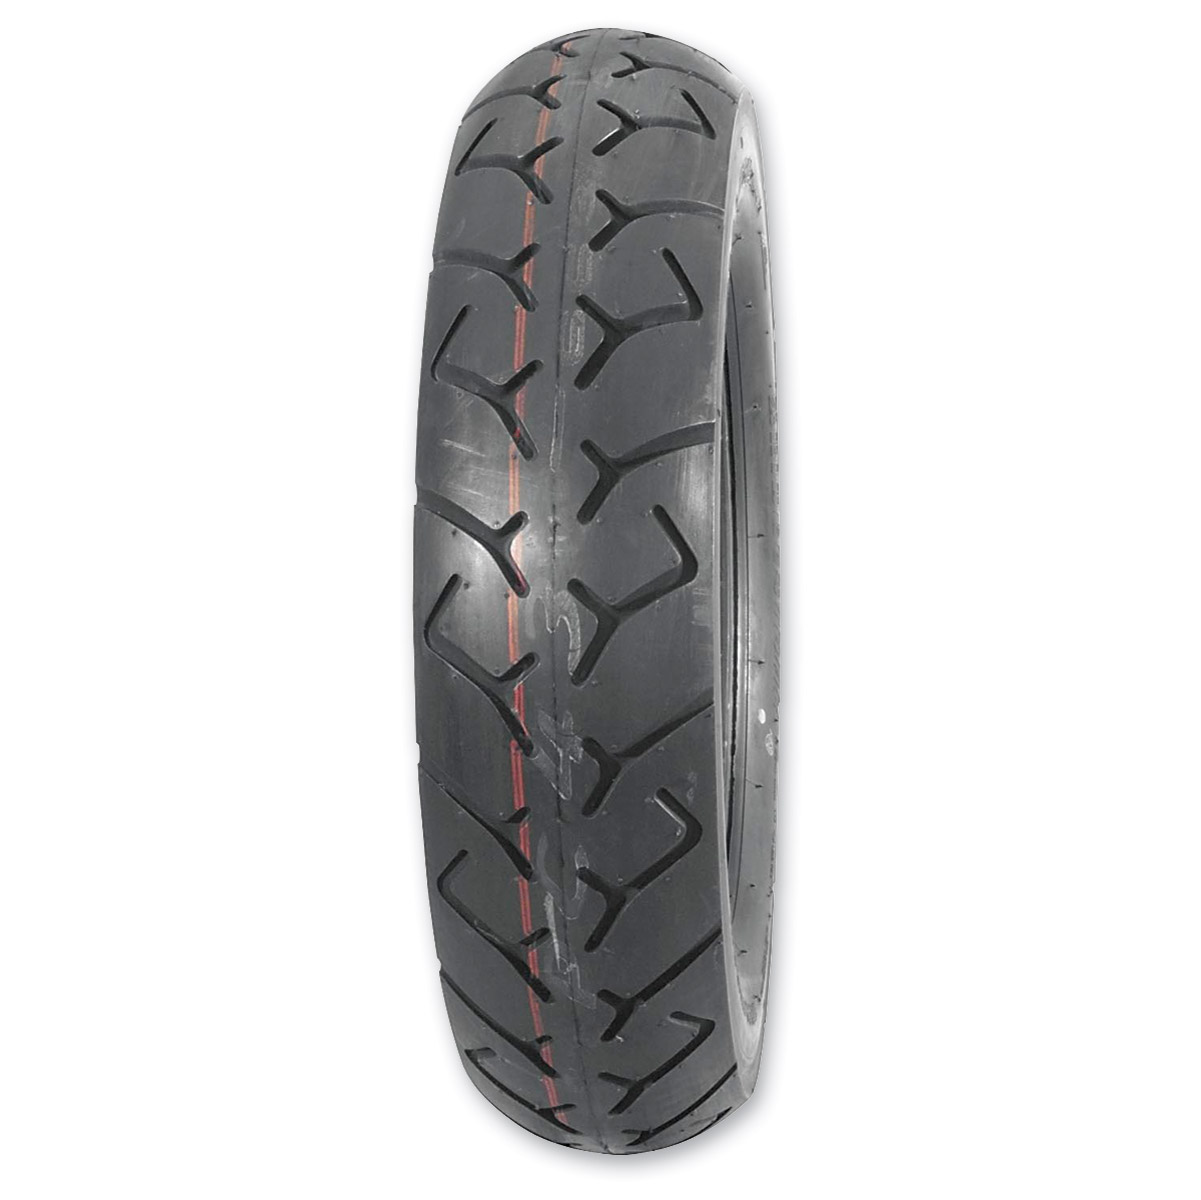 Bridgestone Exedra G702 160/80-15 Rear Tire